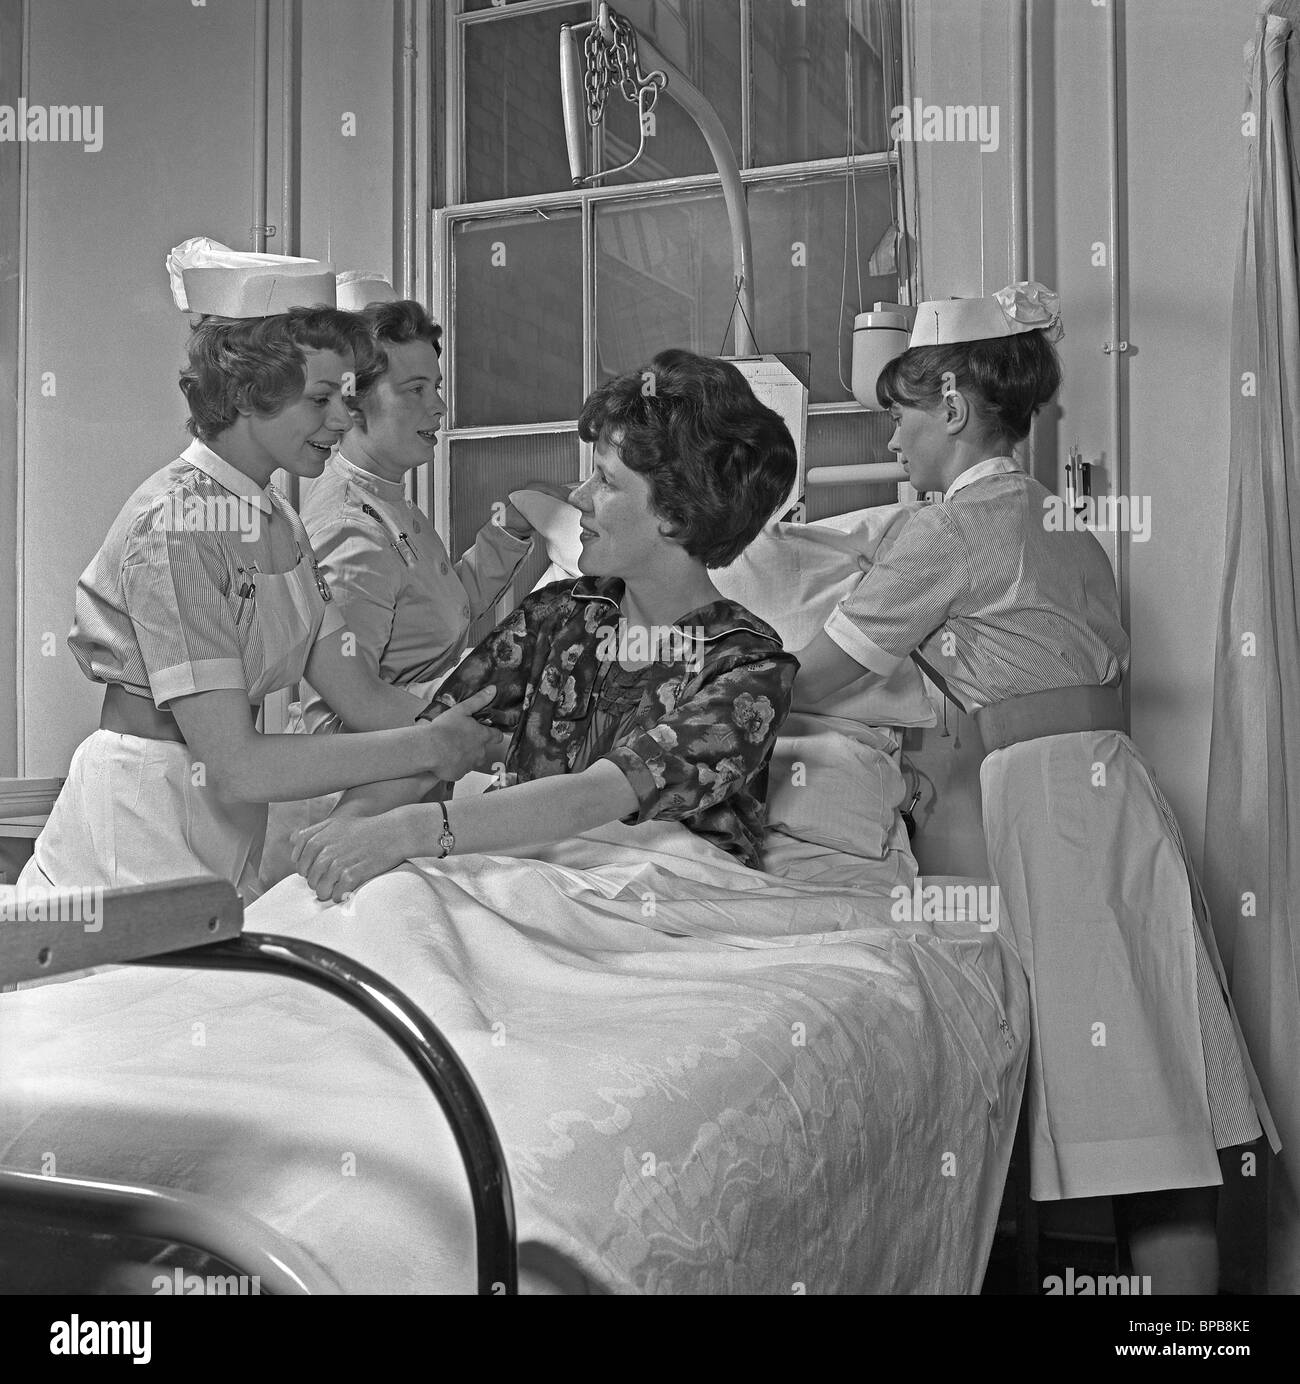 Hospital nurses gathered around a patient in bed adjusting her pillows in, c. 1960 - Stock Image